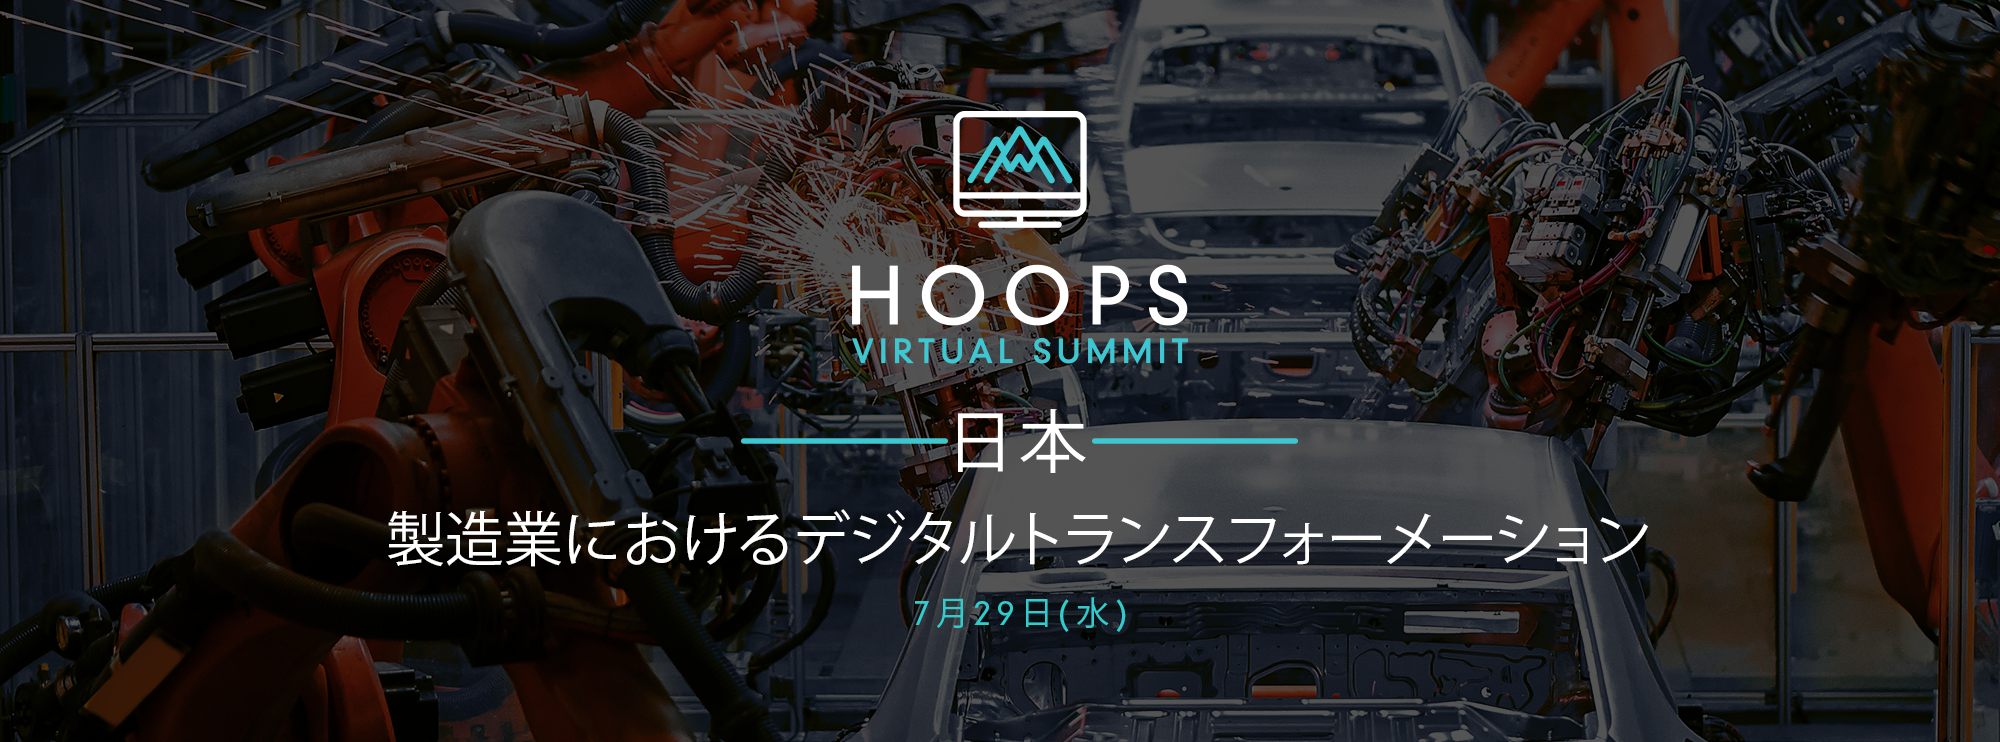 mailedit_HOOPS-Summit-Manufacturing_Japan-v3